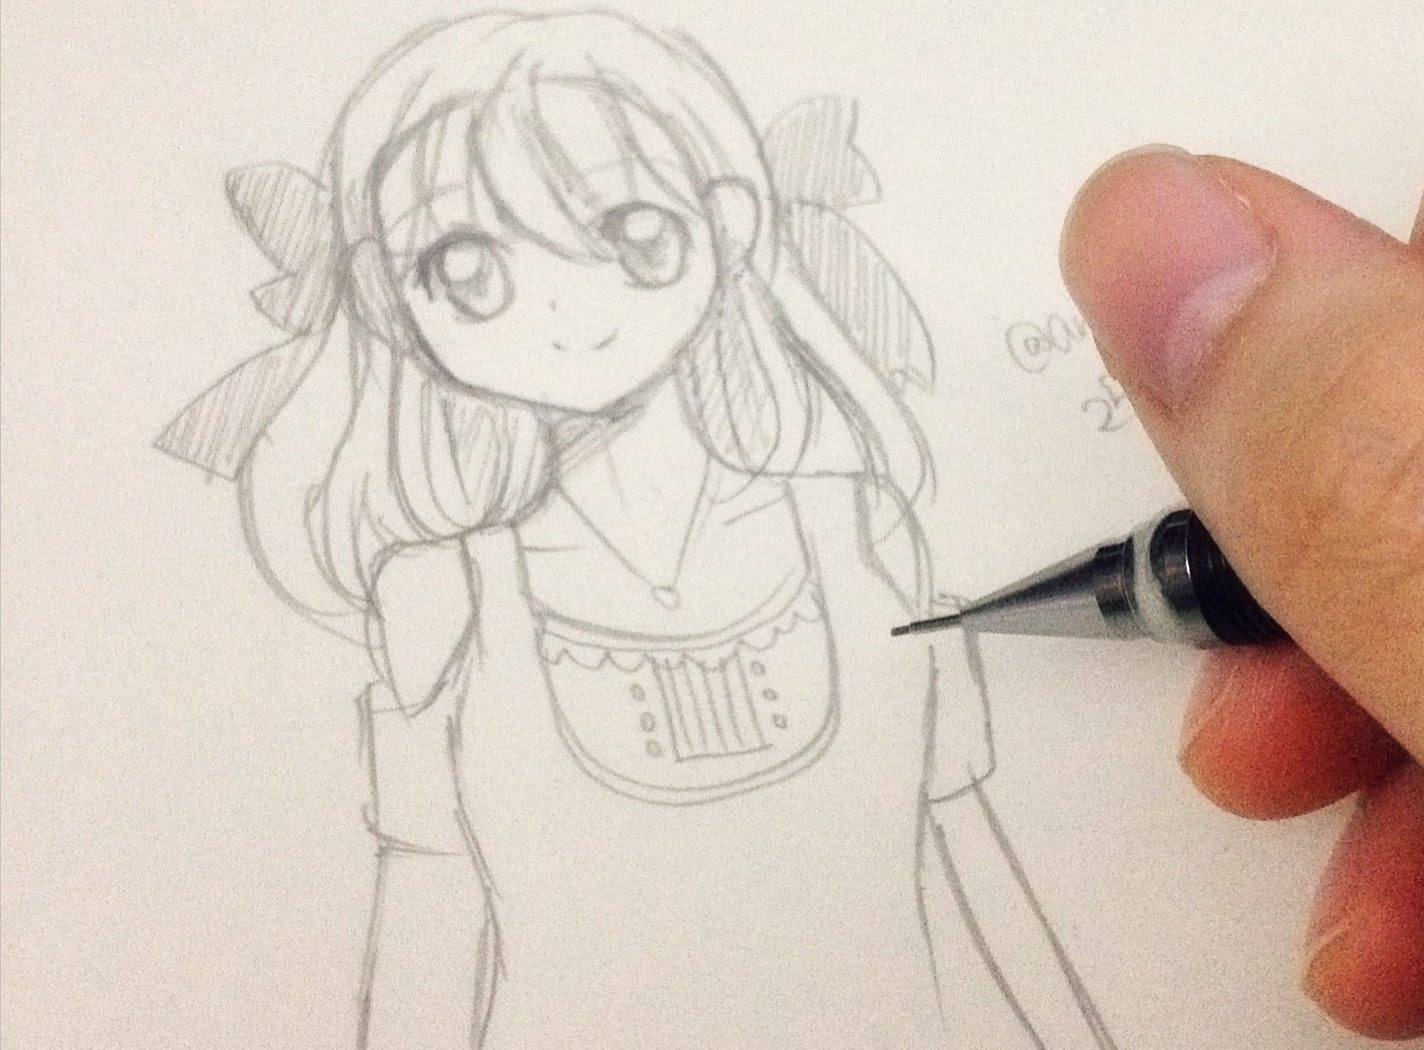 Step By Step Anime Drawing at GetDrawings com | Free for personal